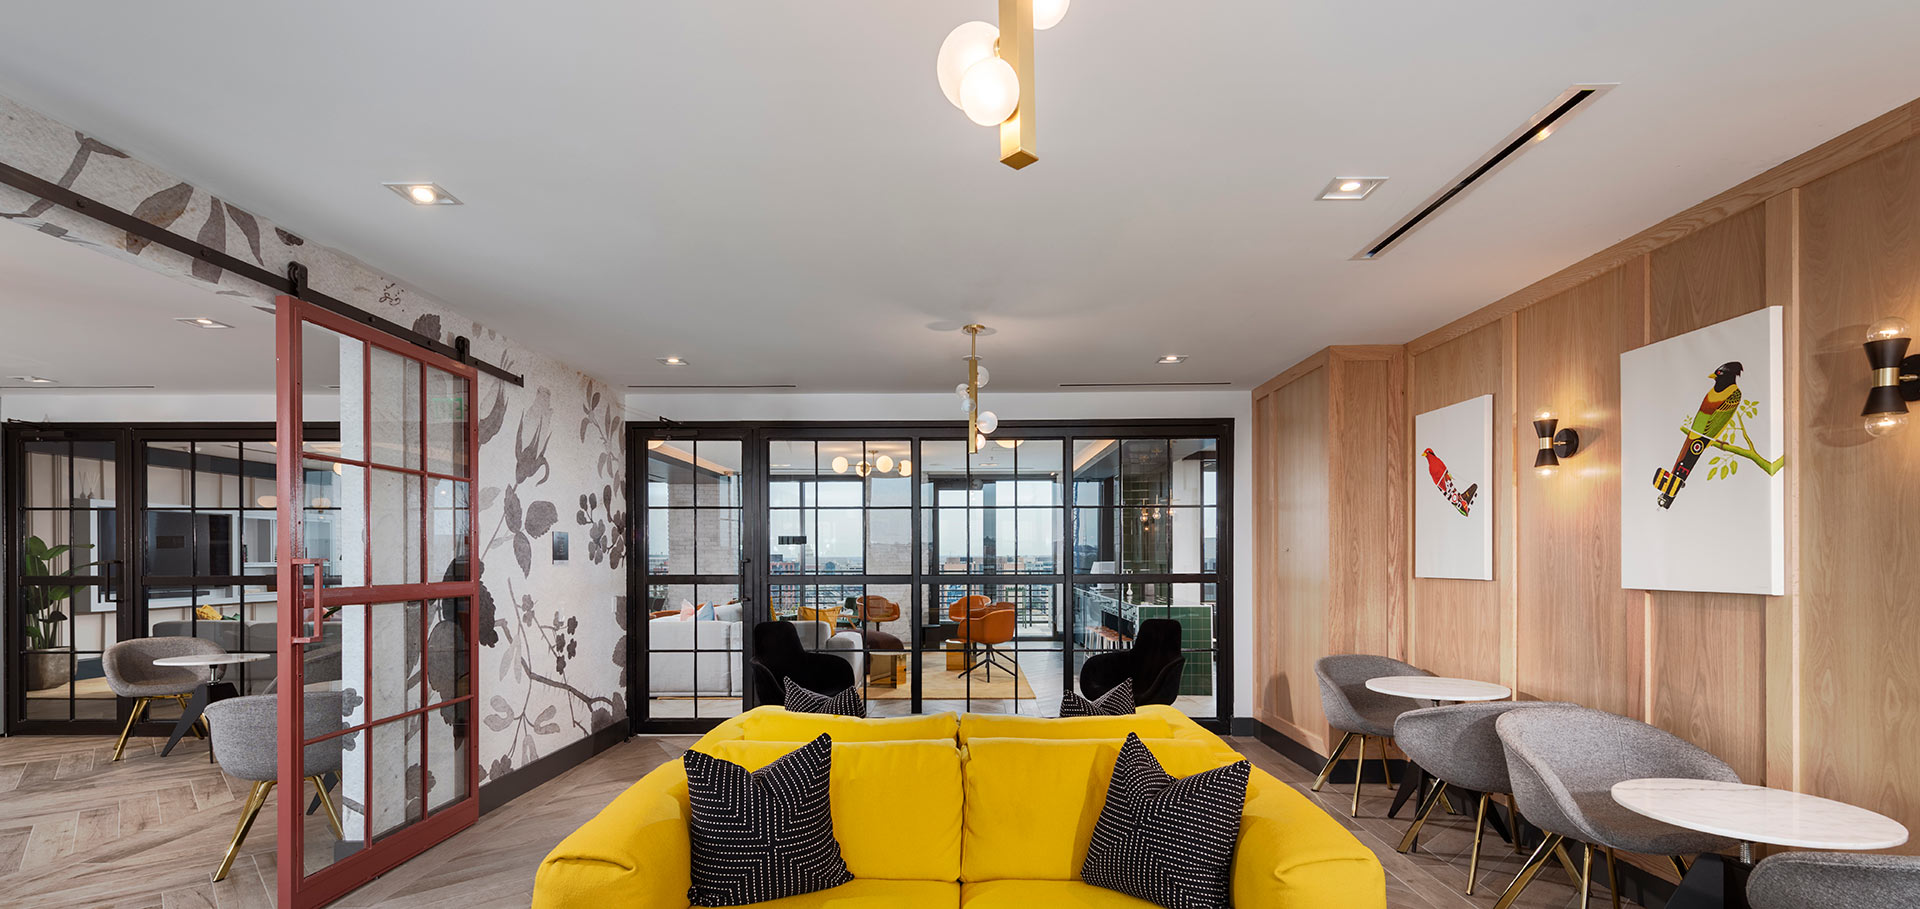 comfortable seating area with yellow sofa